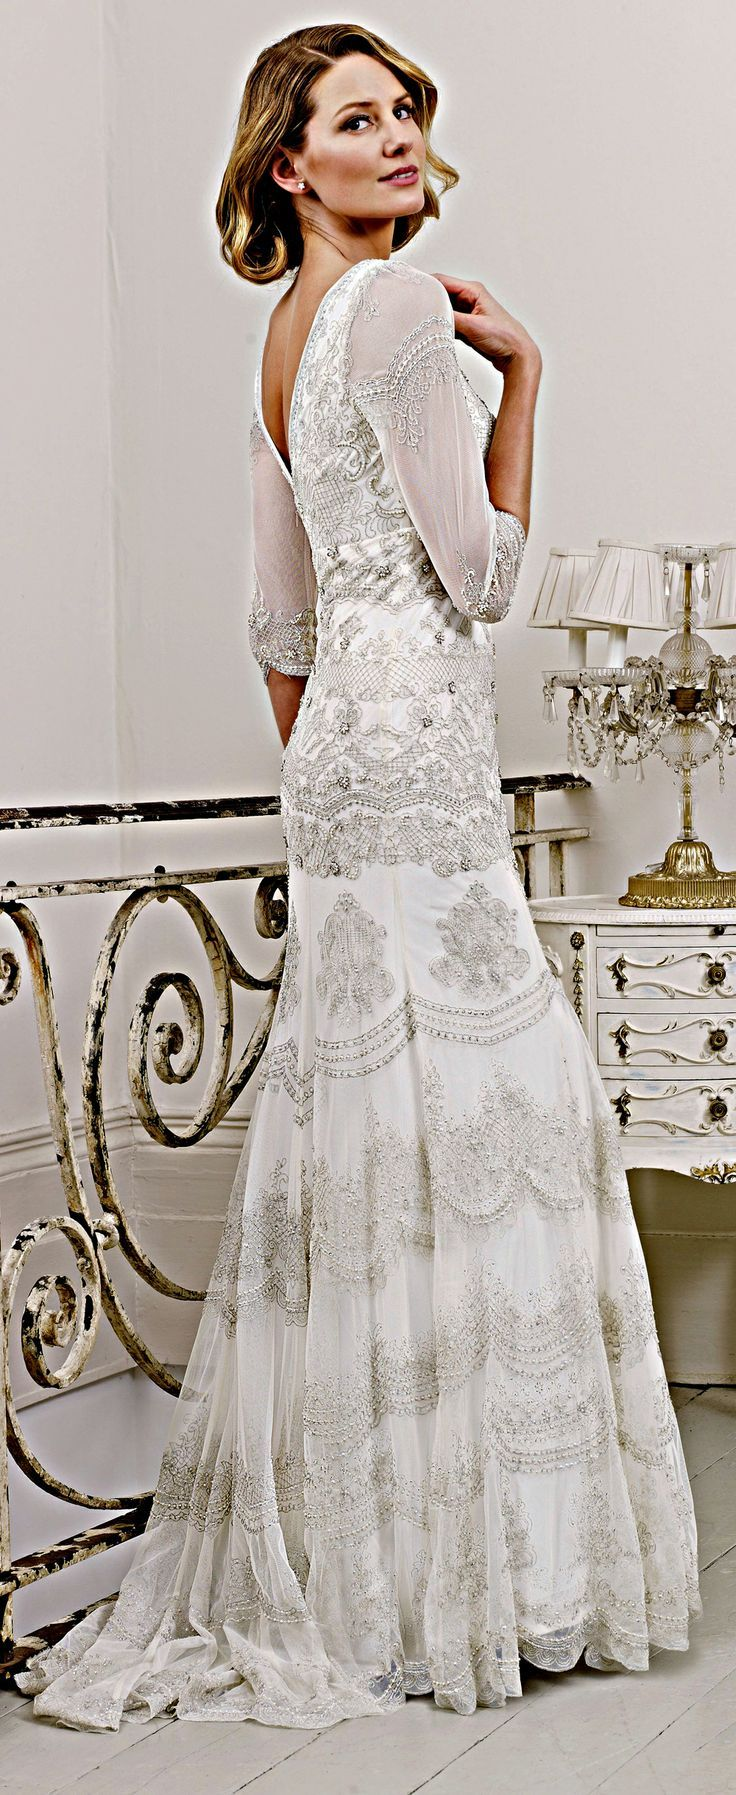 wedding dresses for senior brides | Best Wedding Dresses For Older Brides With Sleeves 0010